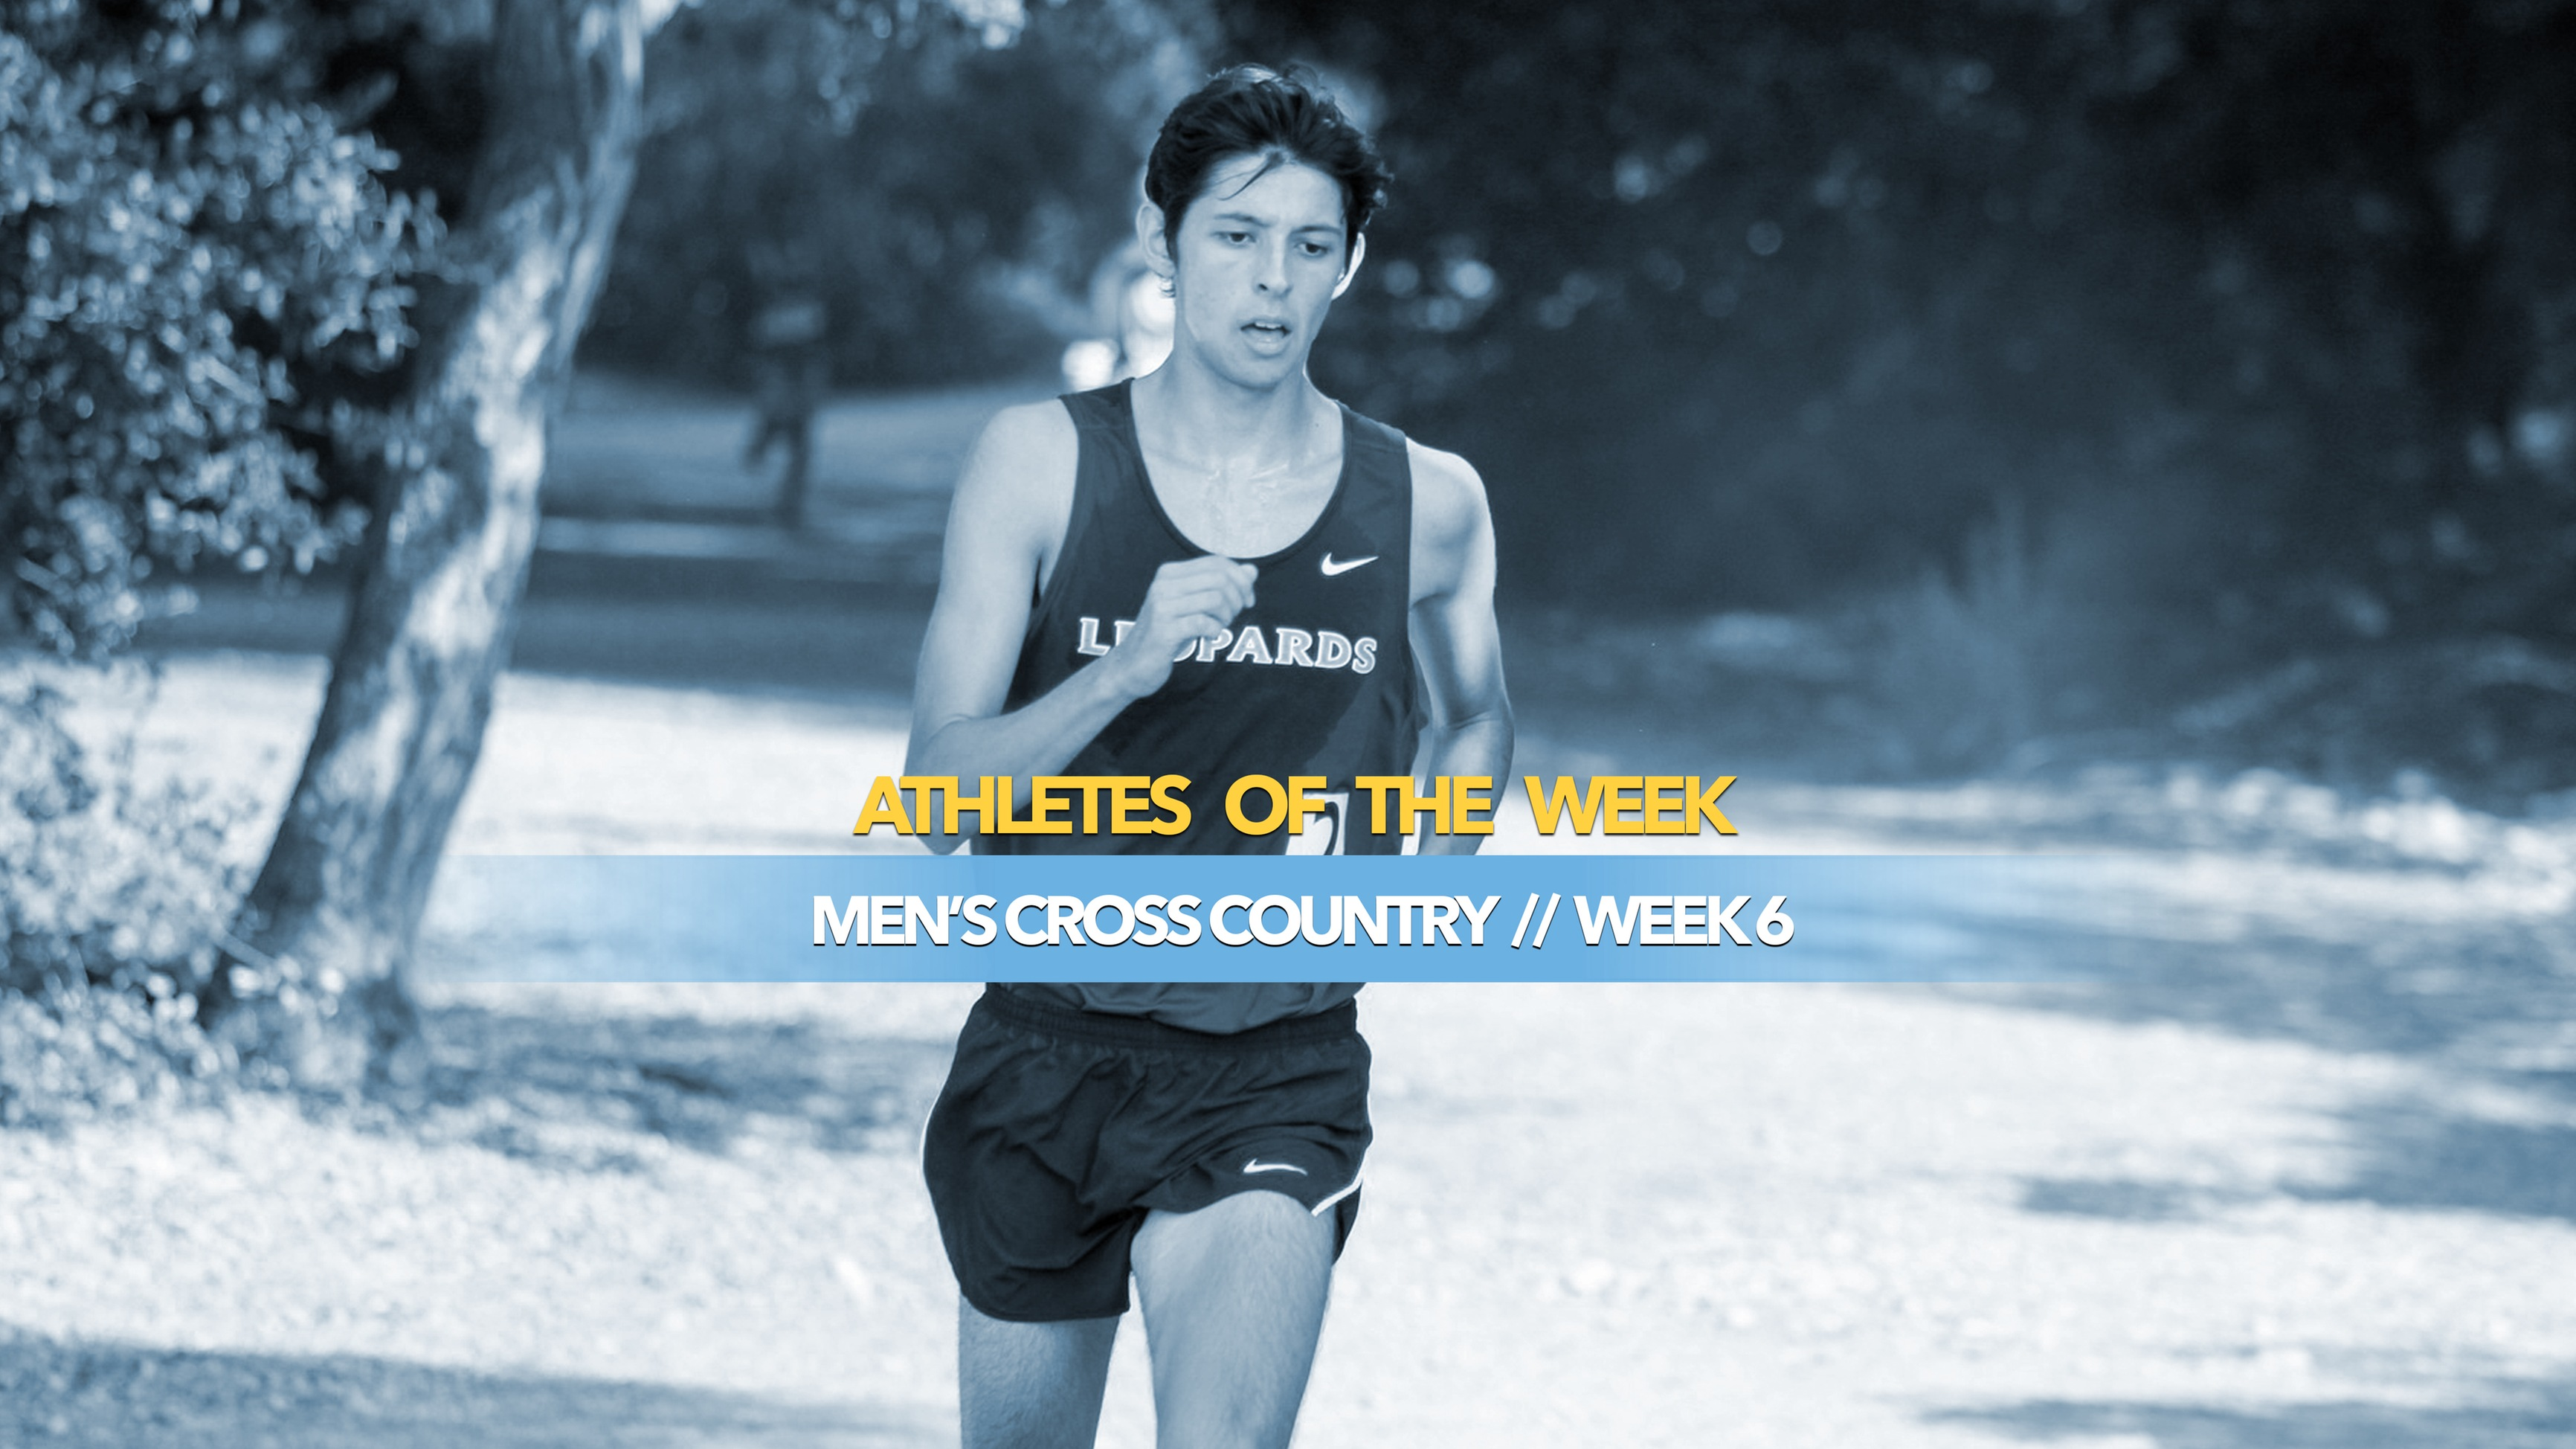 Men's Cross Country Athlete of the Week: October 7, 2019